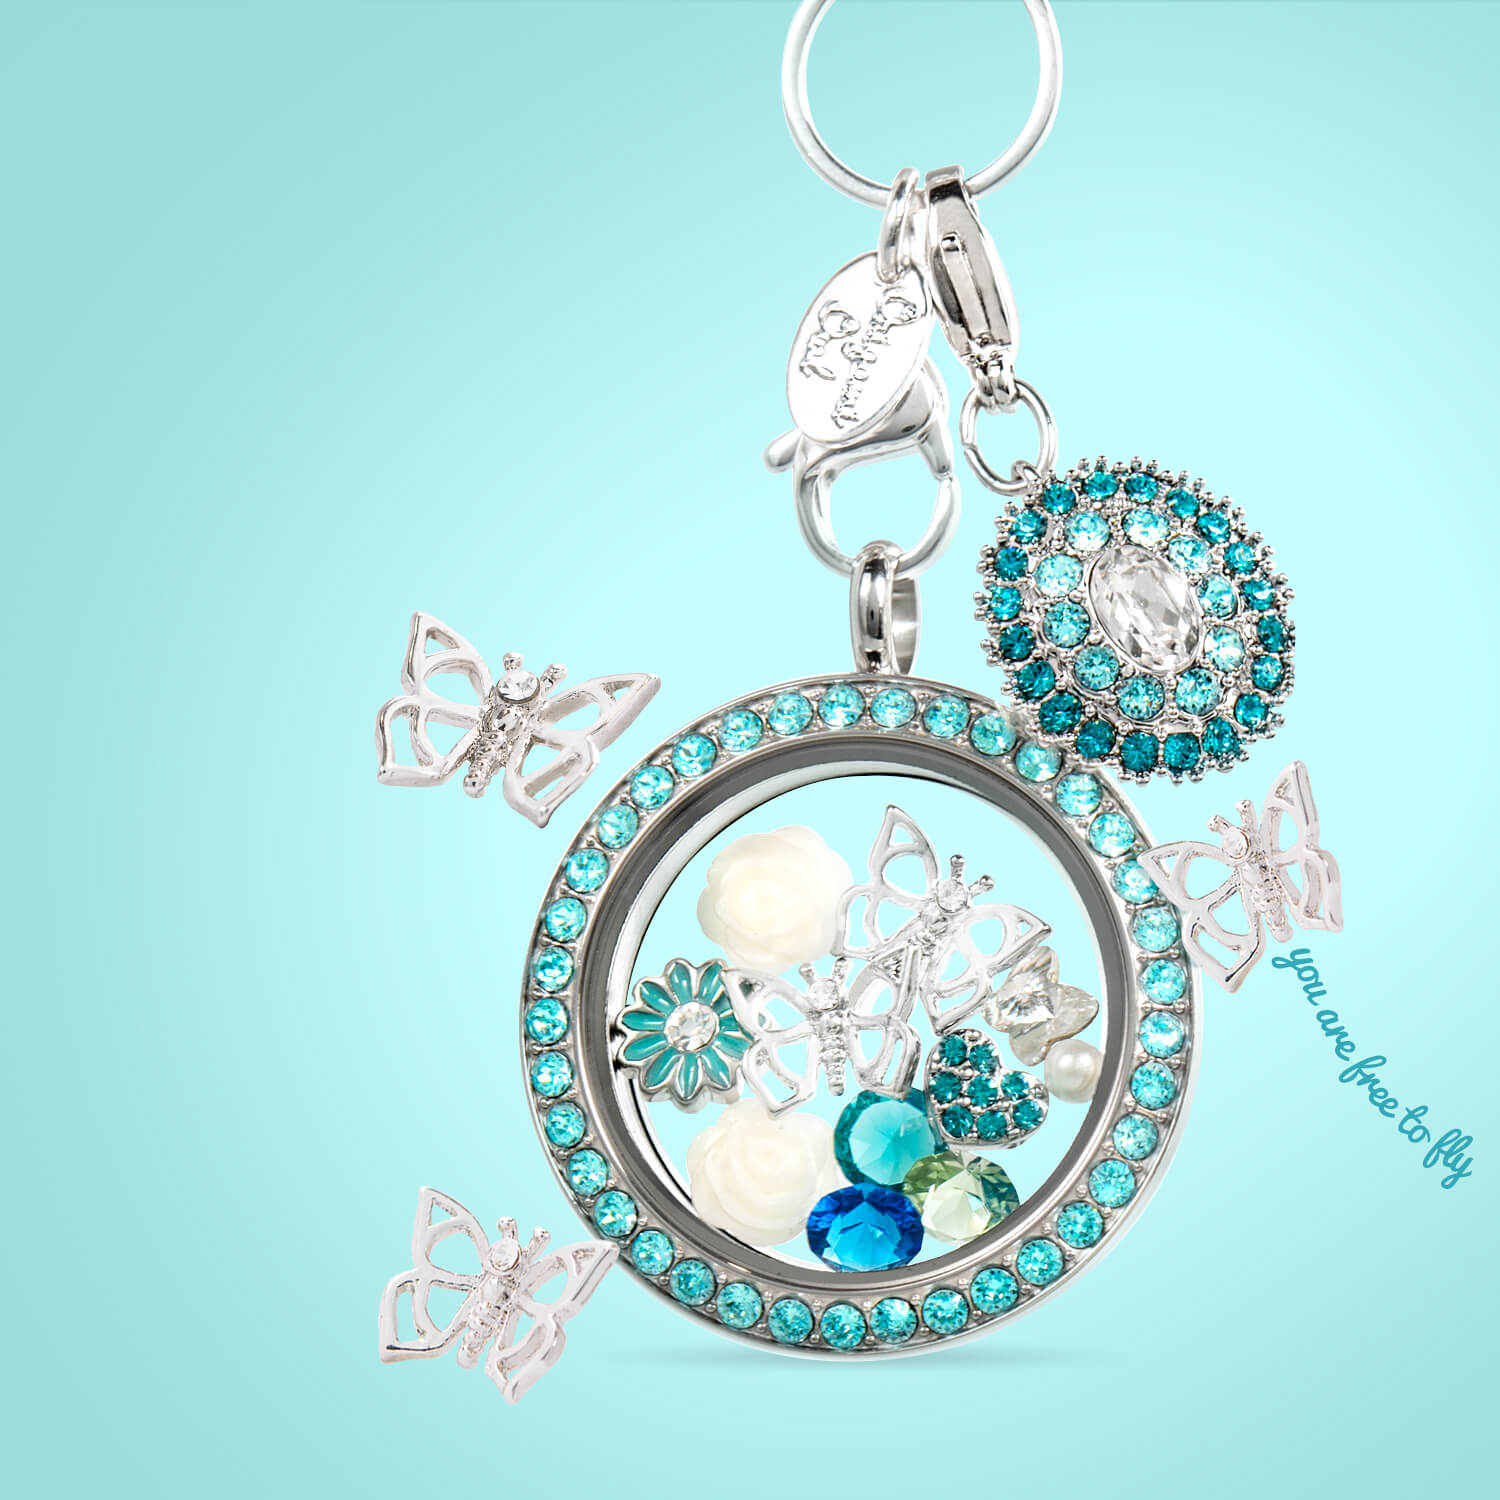 Origami Owl Over The Heart Chain Origami Owl Jewelry Videos Join My Join My Team Be A Part Of An